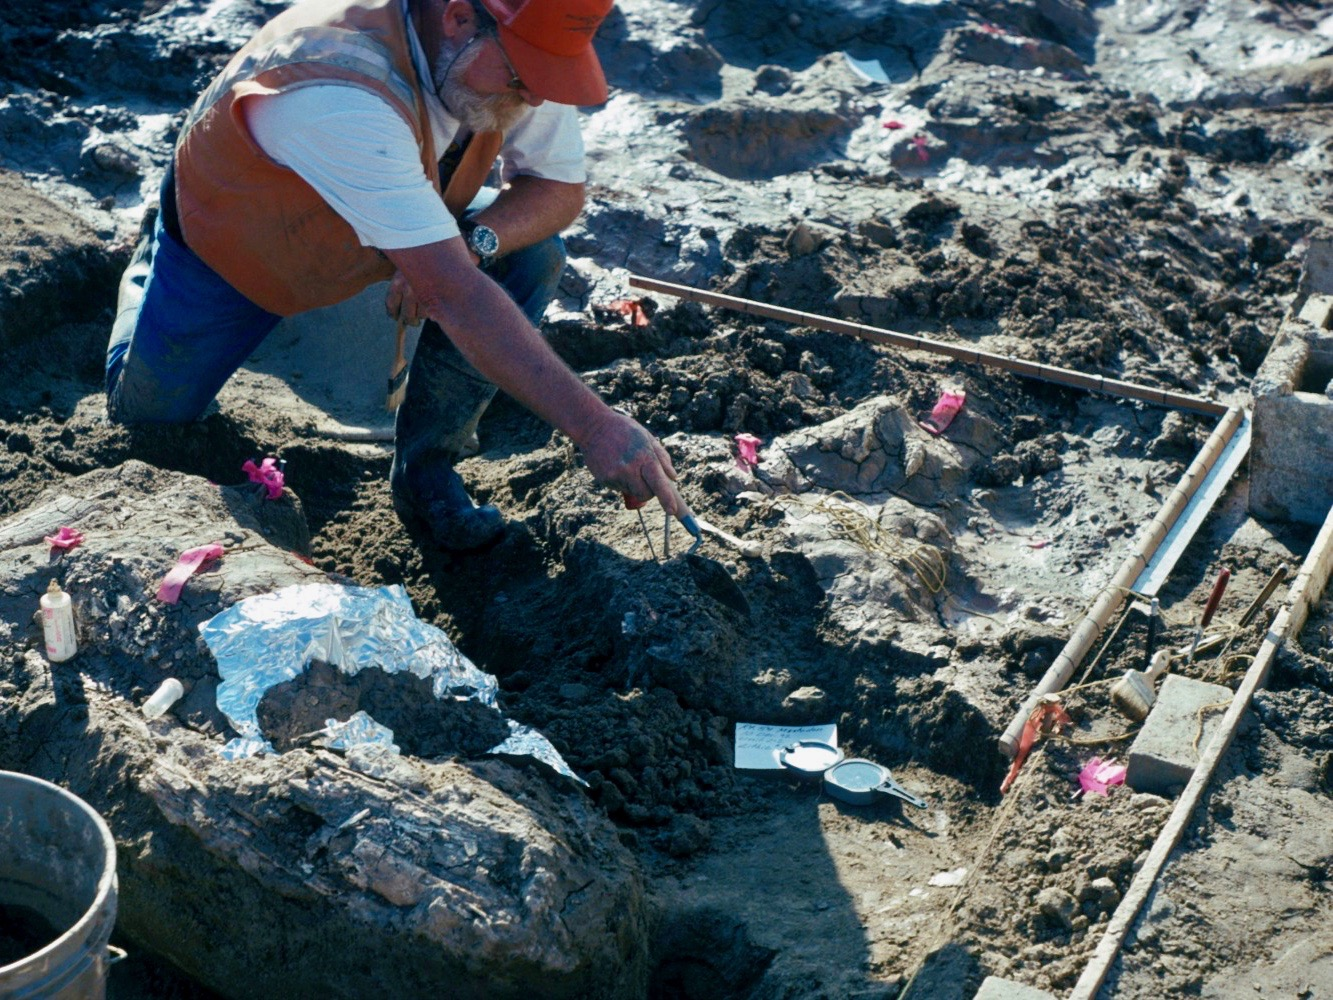 Study finds human presence at 130,000-year-old site in California